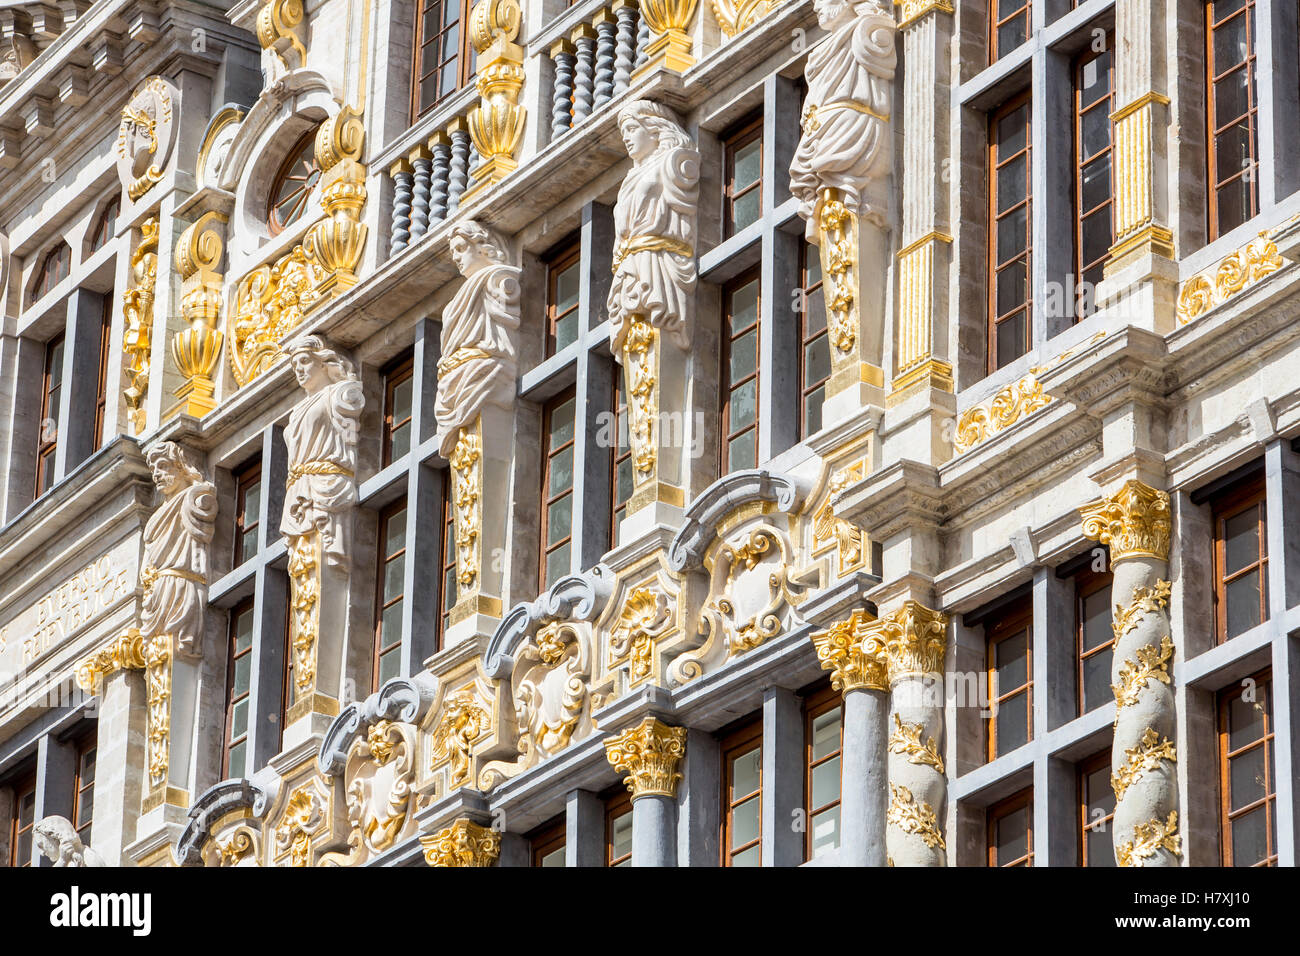 Facades of historic houses at the market square, Oude Markt, Grand Place, in the old town of Brussels, Belgium, Stock Photo